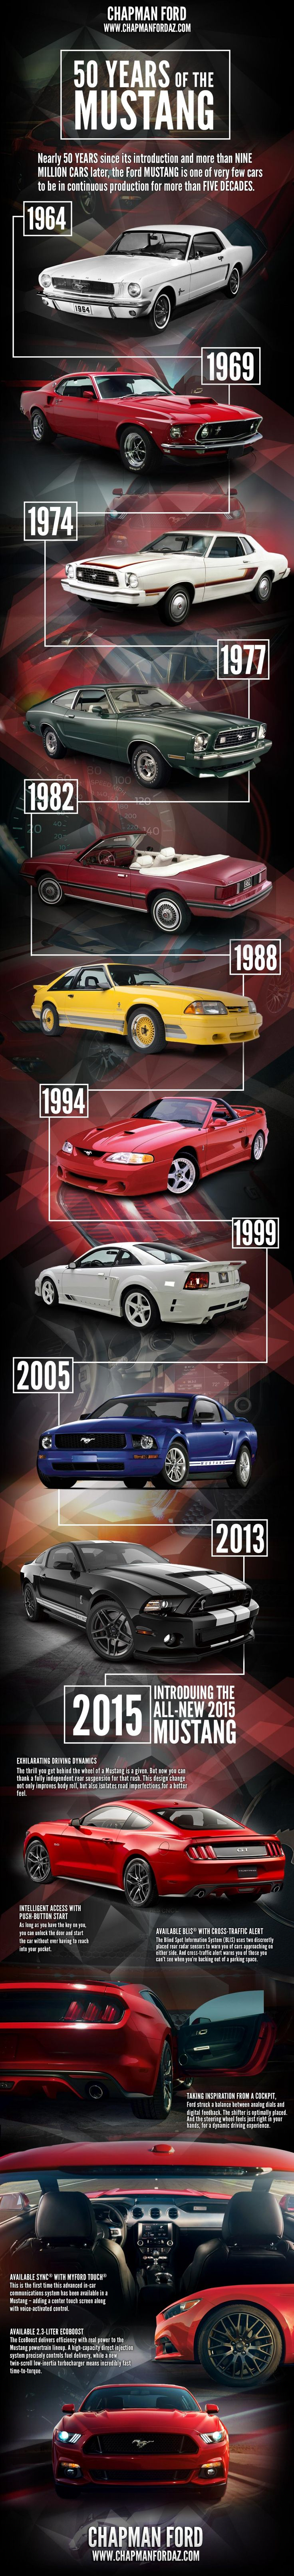 50 Years of the Ford Mustang Infographic